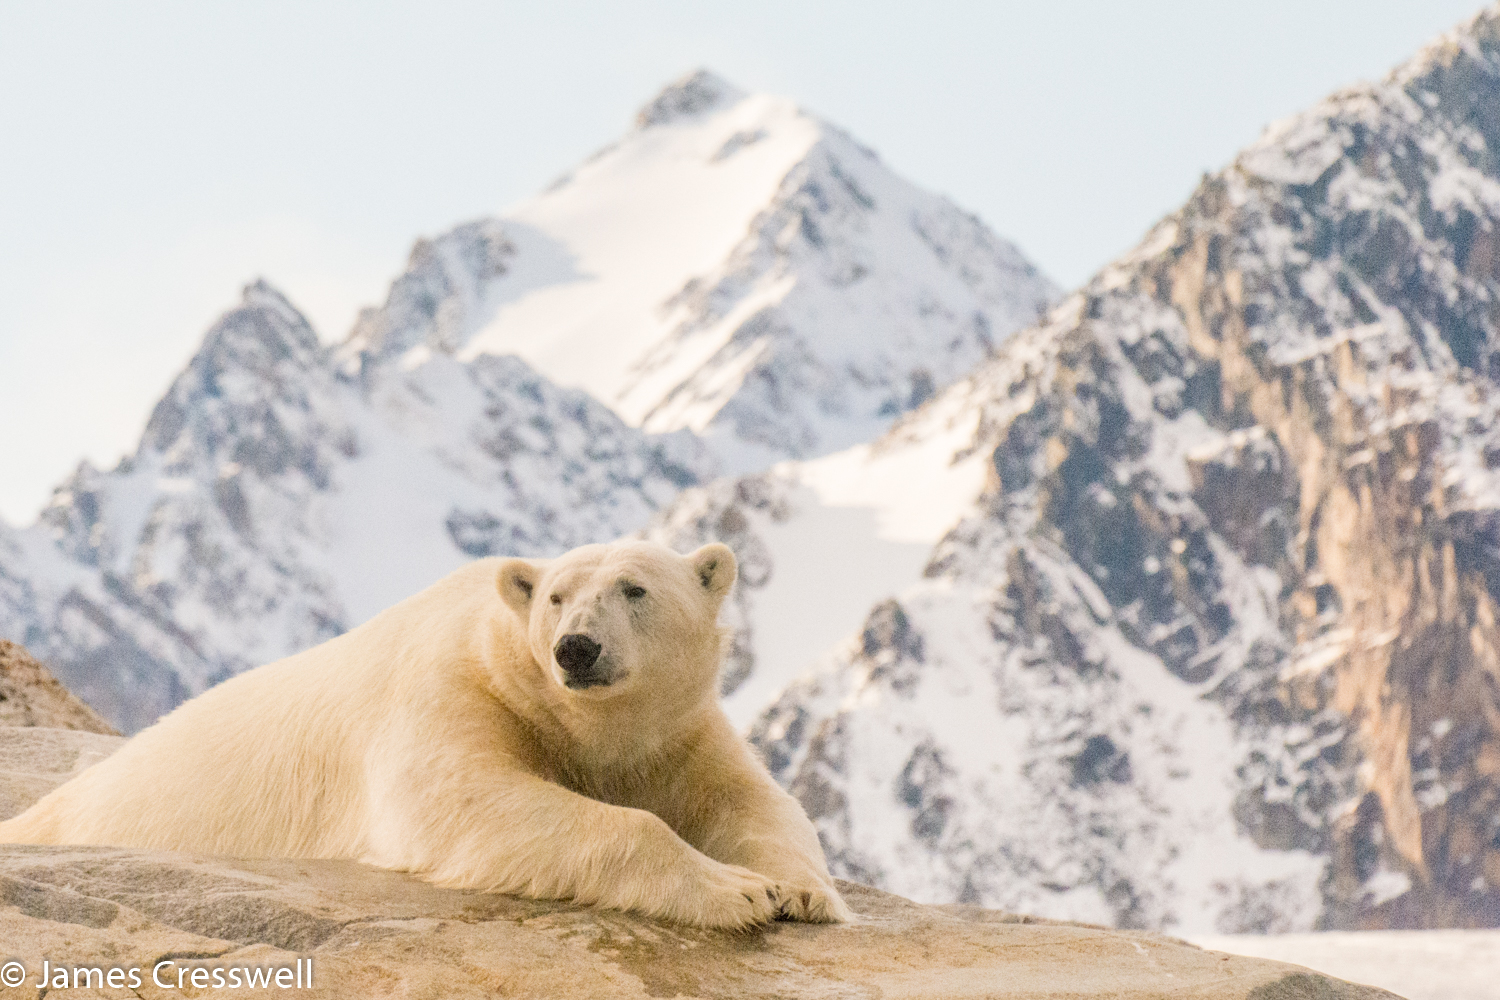 A photograph of a polar bear taken in Svalbard on a PolarWorld Travel placed cruise